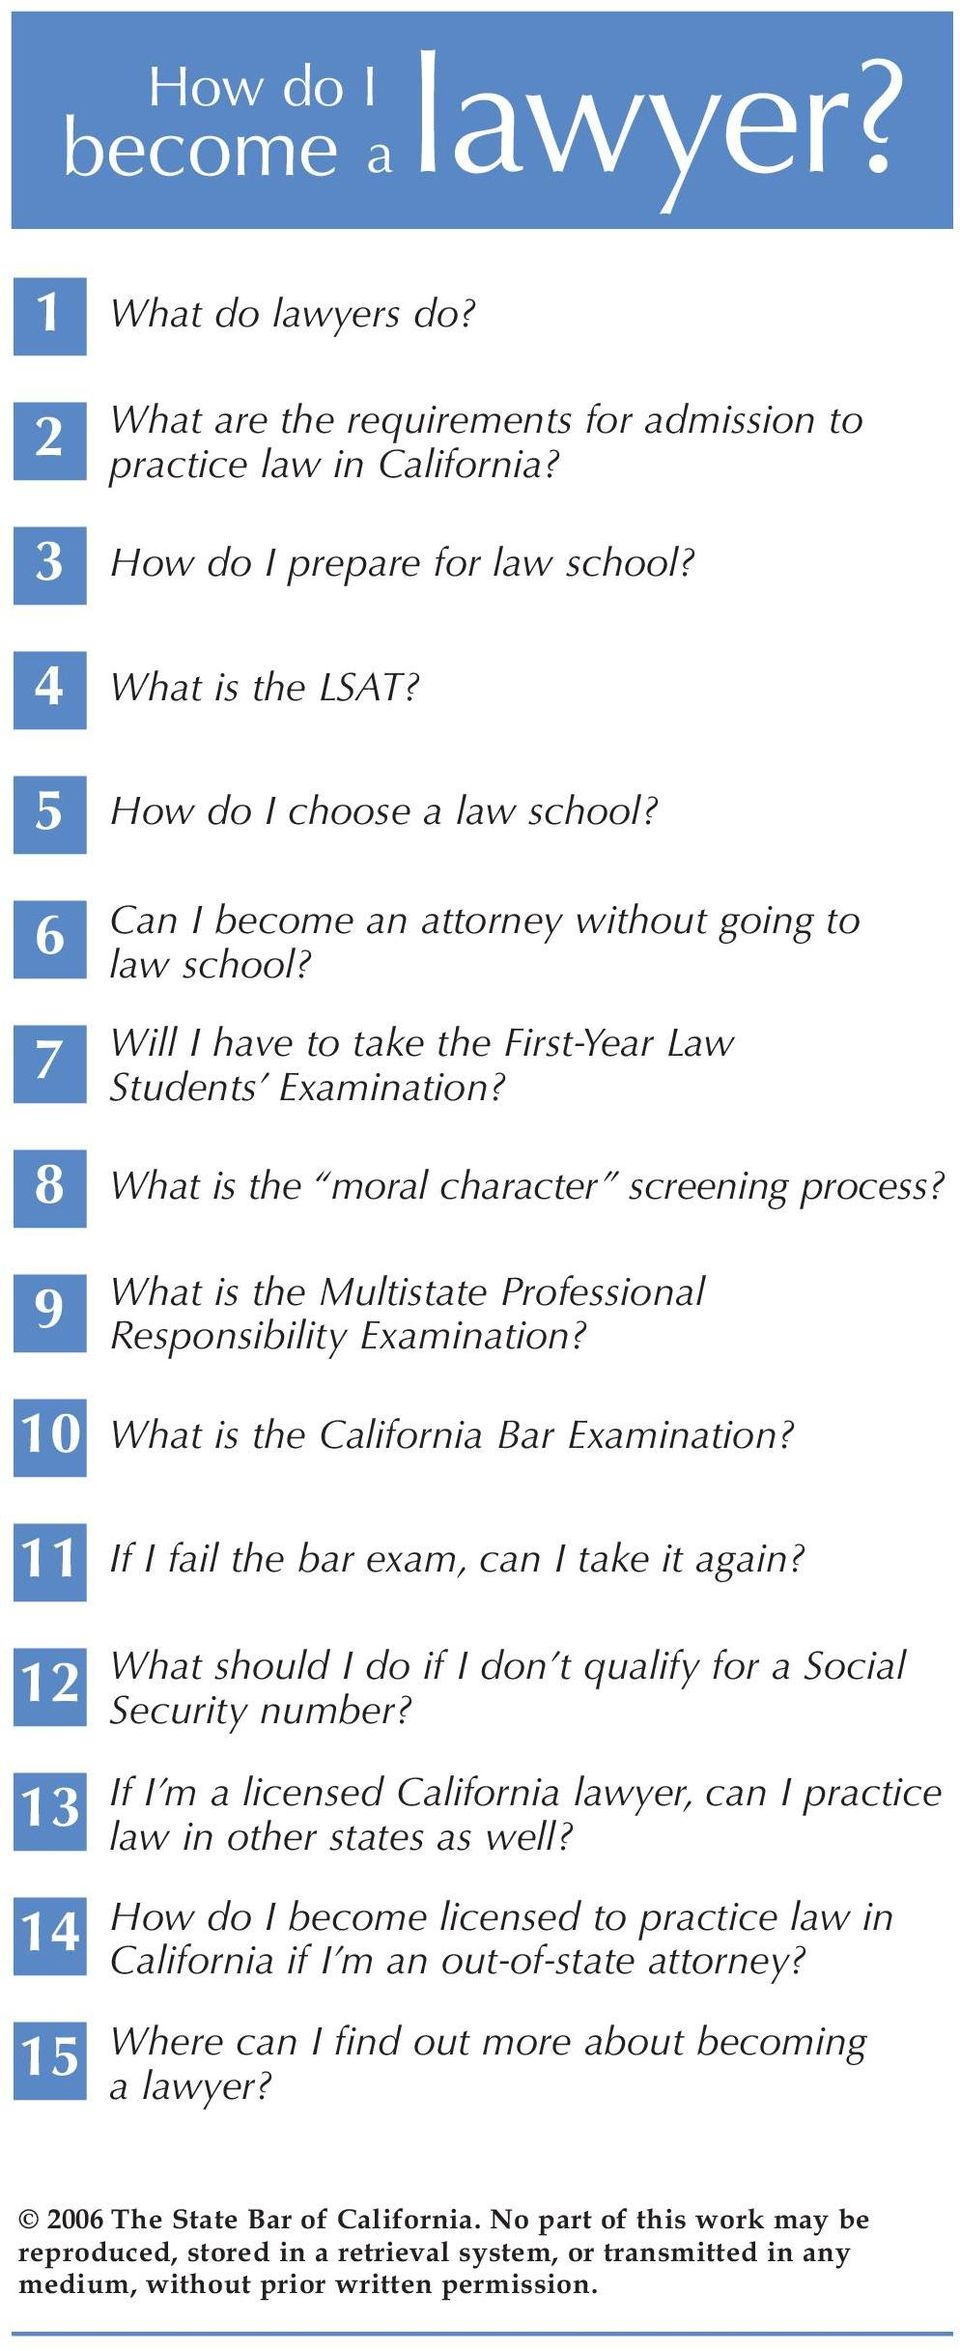 9 What is the Multistate Professional Responsibility Examination? 10 What is the California Bar Examination? 11 If I fail the bar exam, can I take it again?